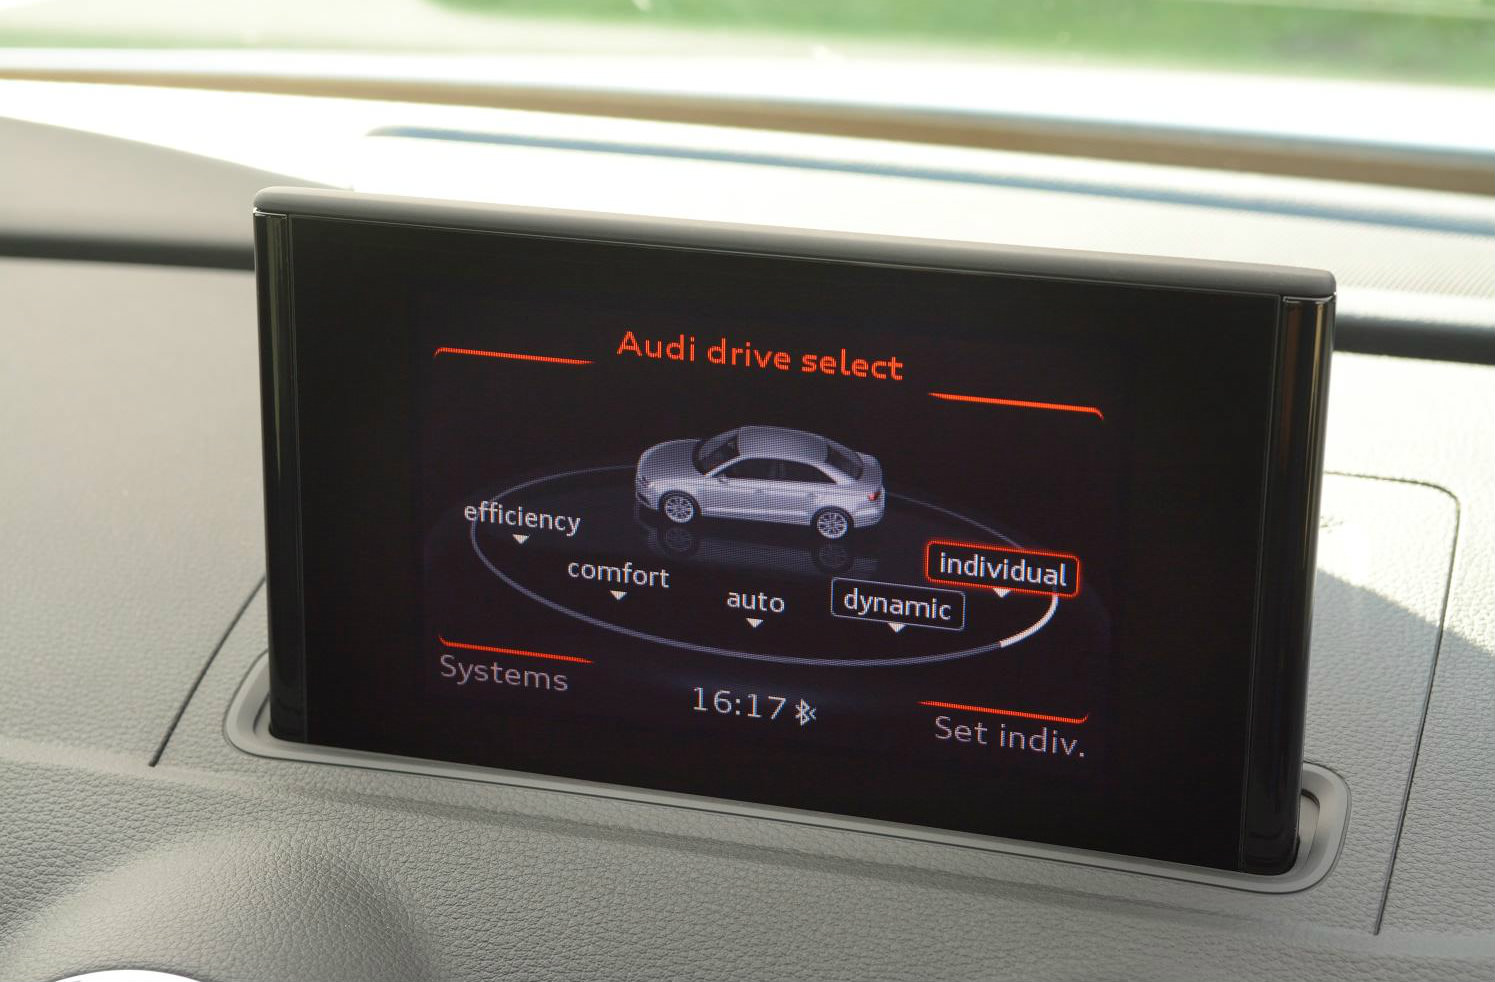 image of an audi a3 display screen for drive select system